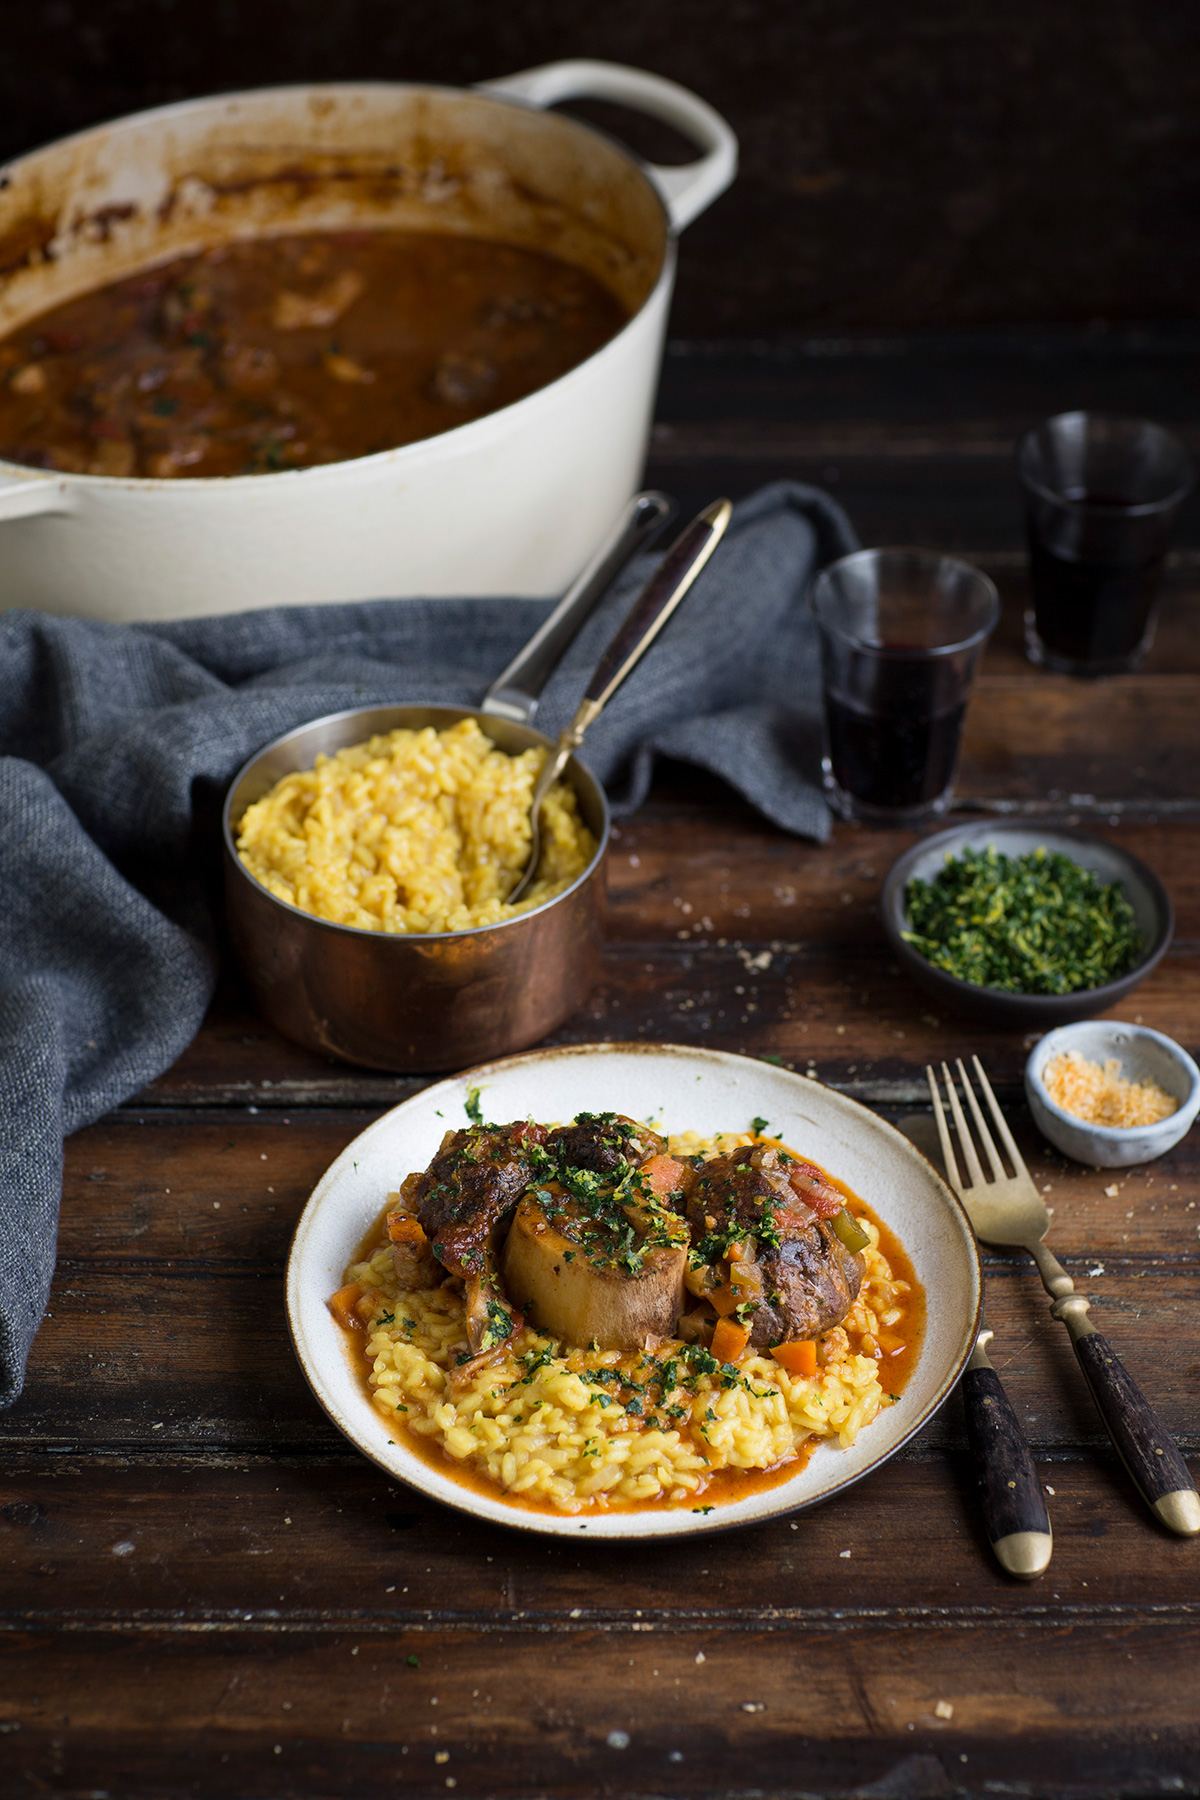 A classic Osso Bucco recipe with risotto Milanese